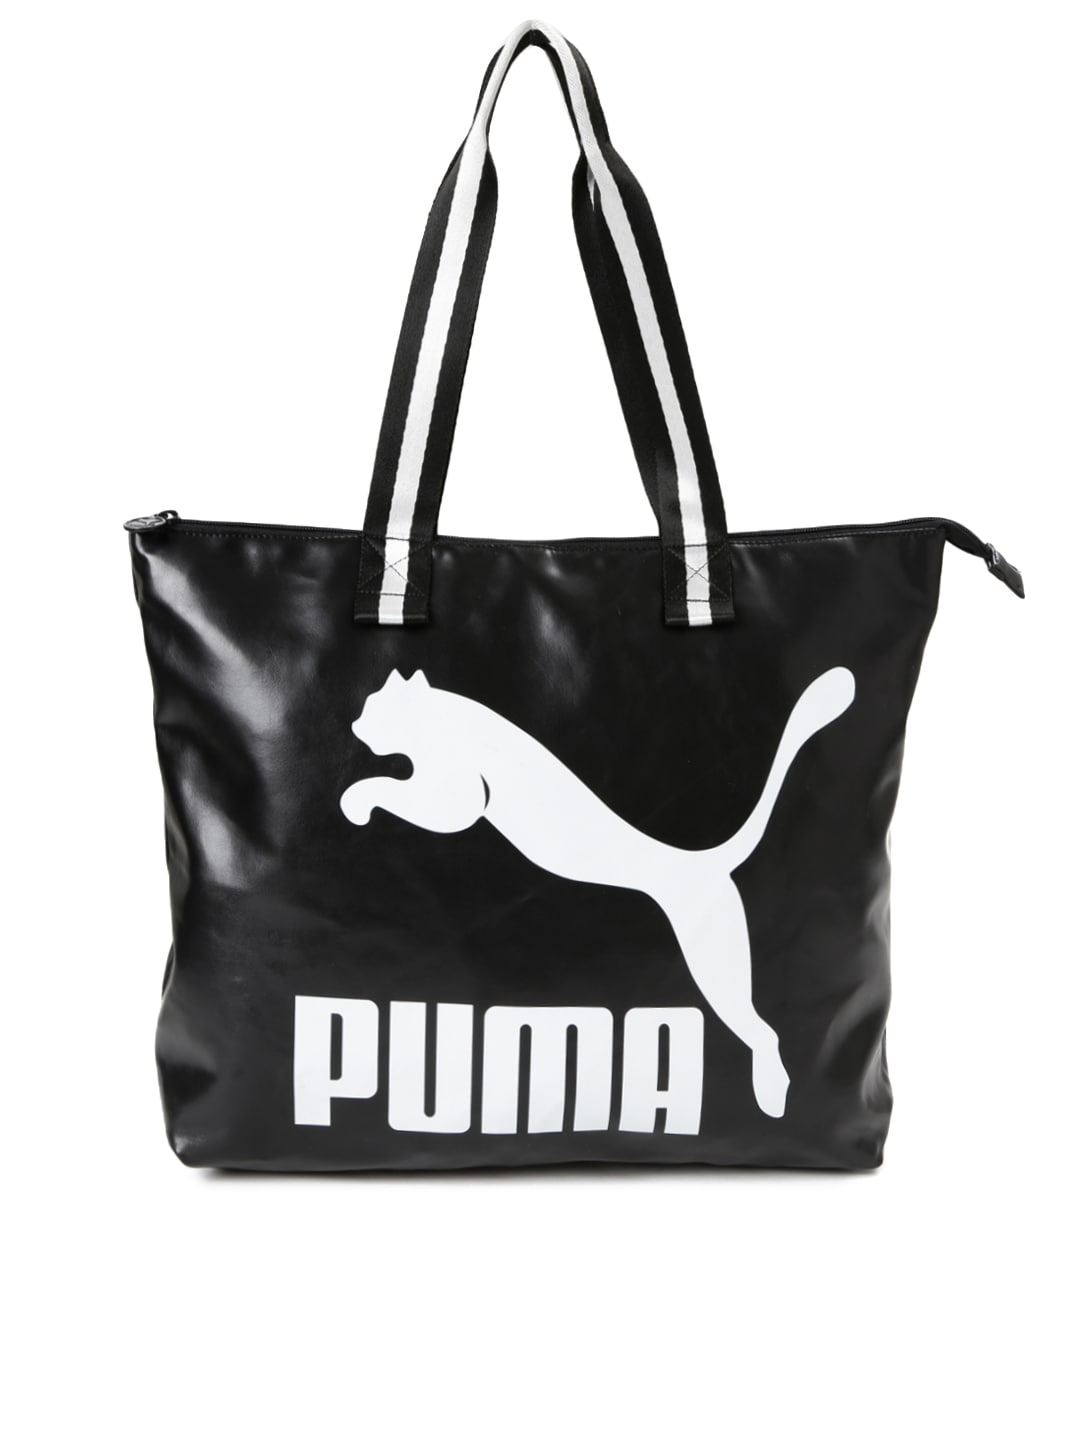 60616132a067 Puma 7423201 Black Printed Tote Bag - Best Price in India